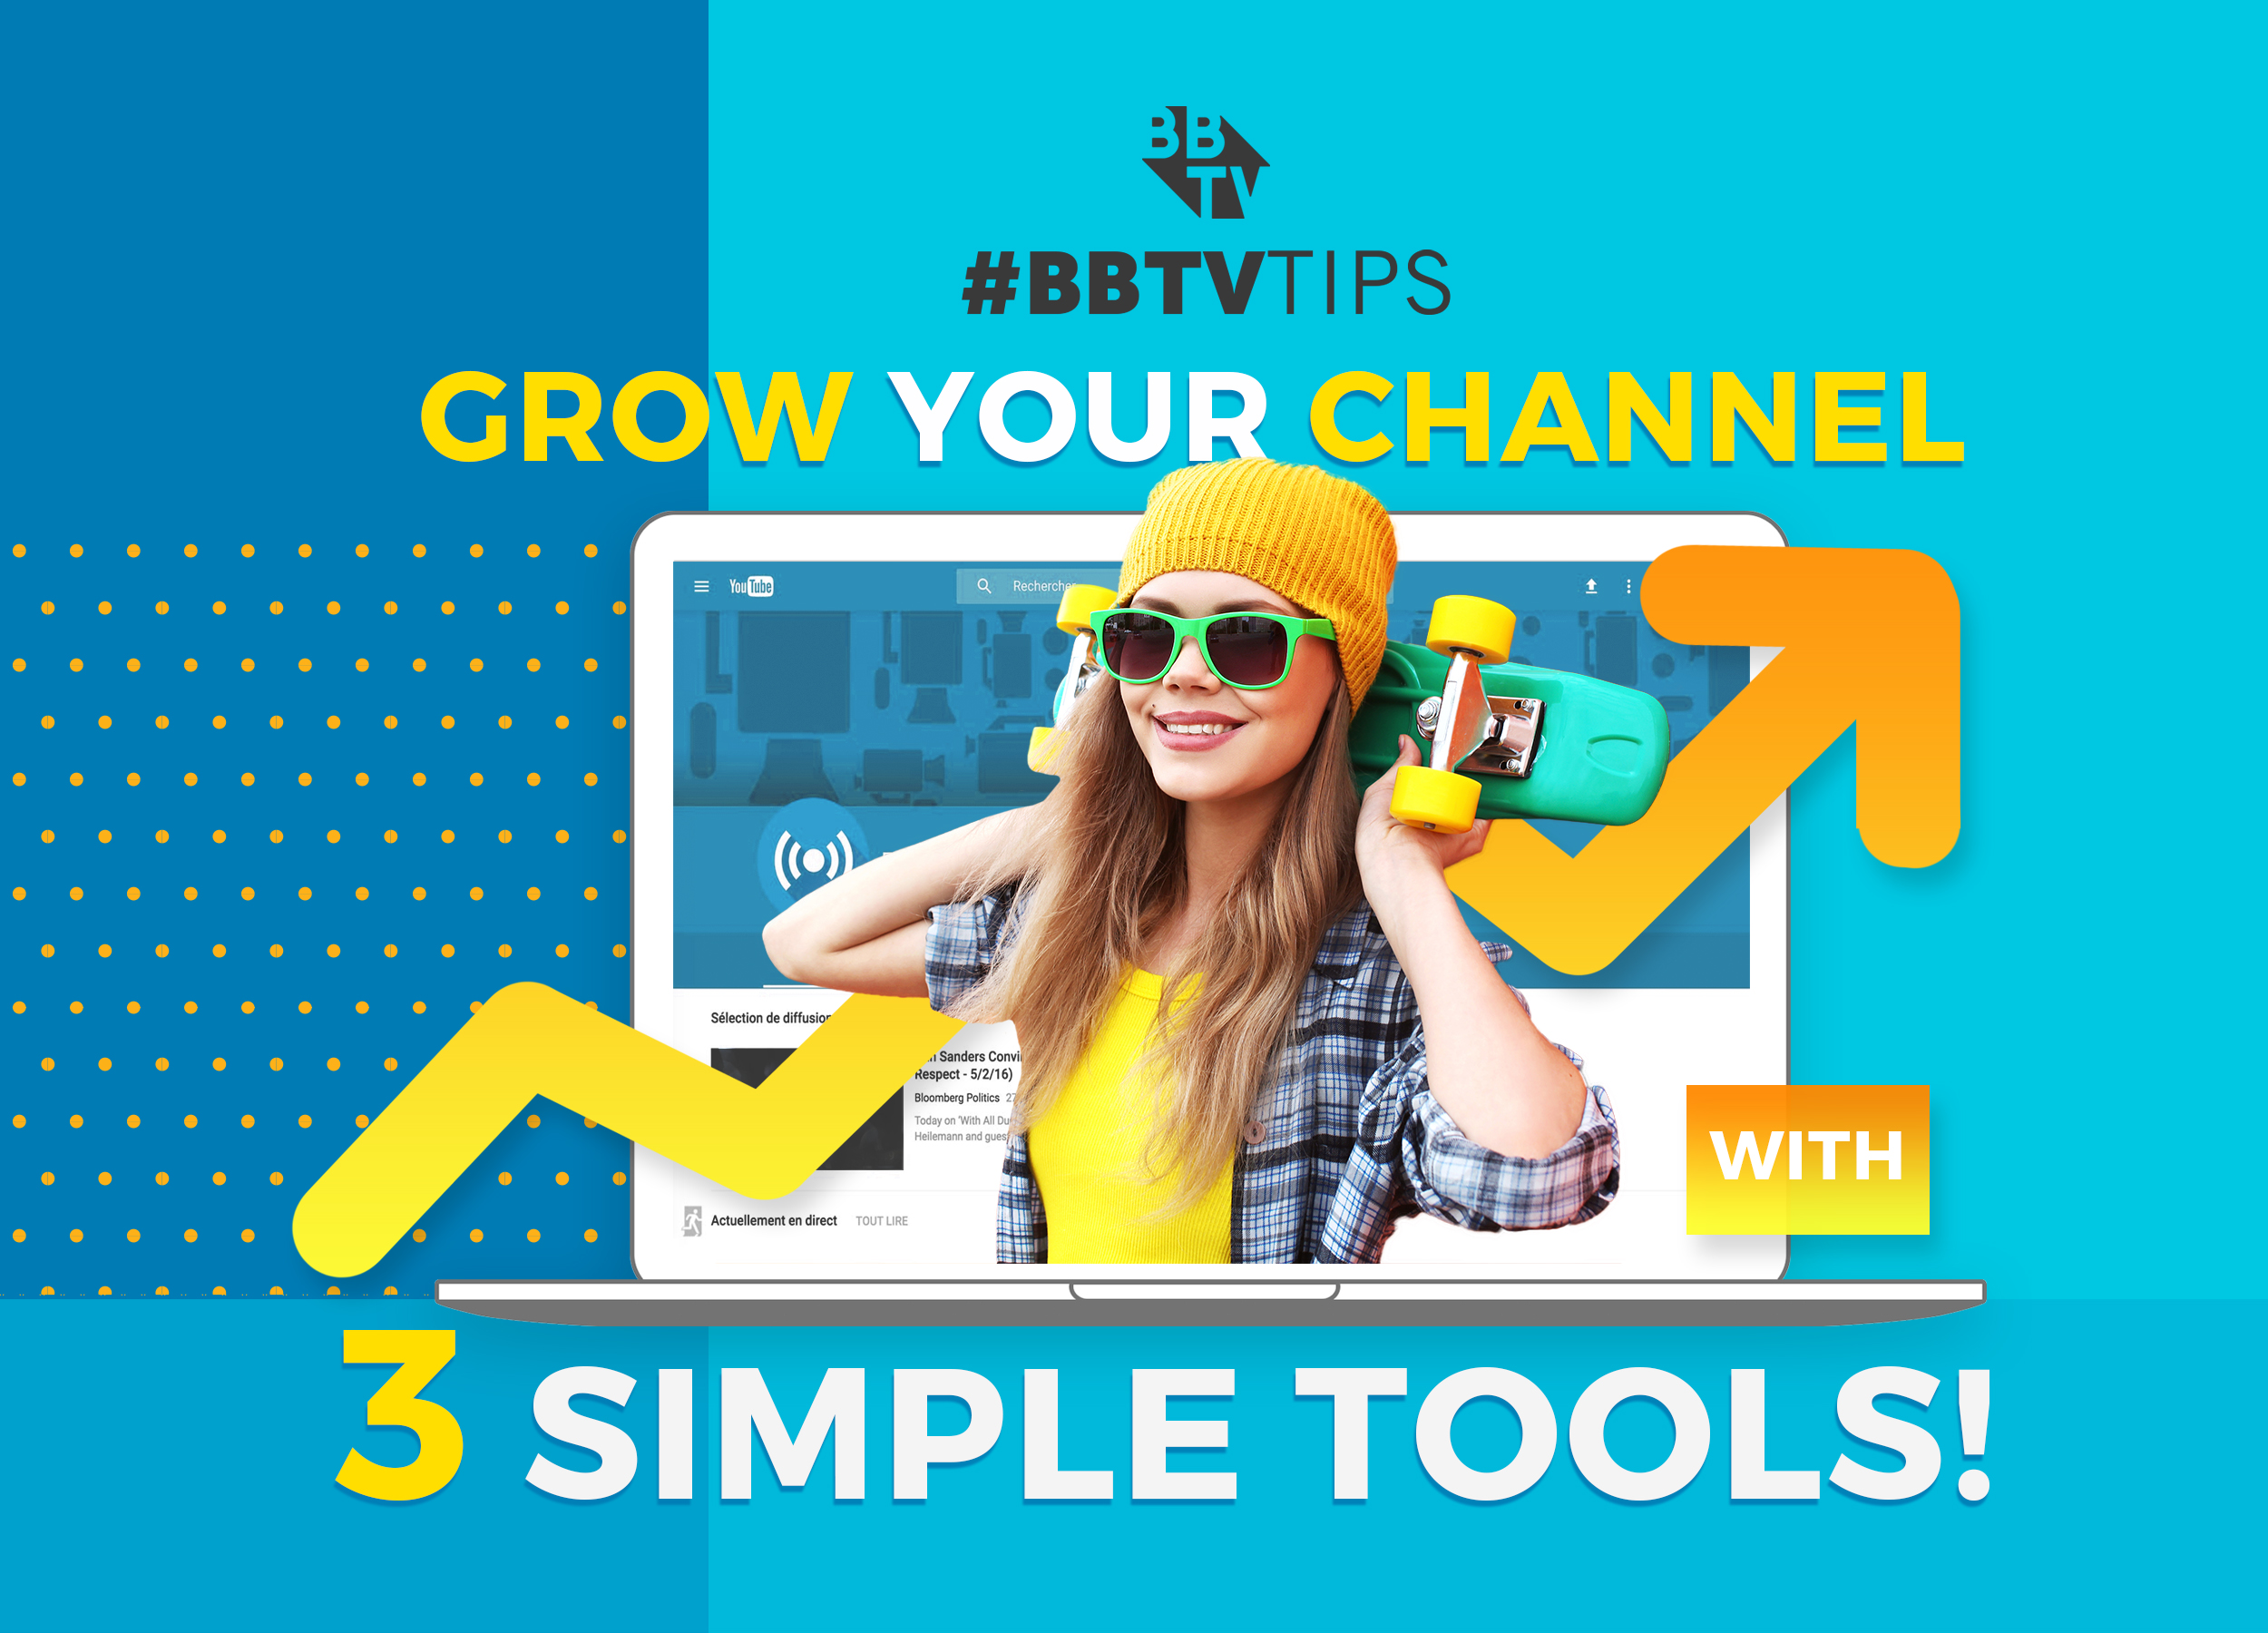 blog3simpletools Grow Your Channel With 3 Simple Tools!